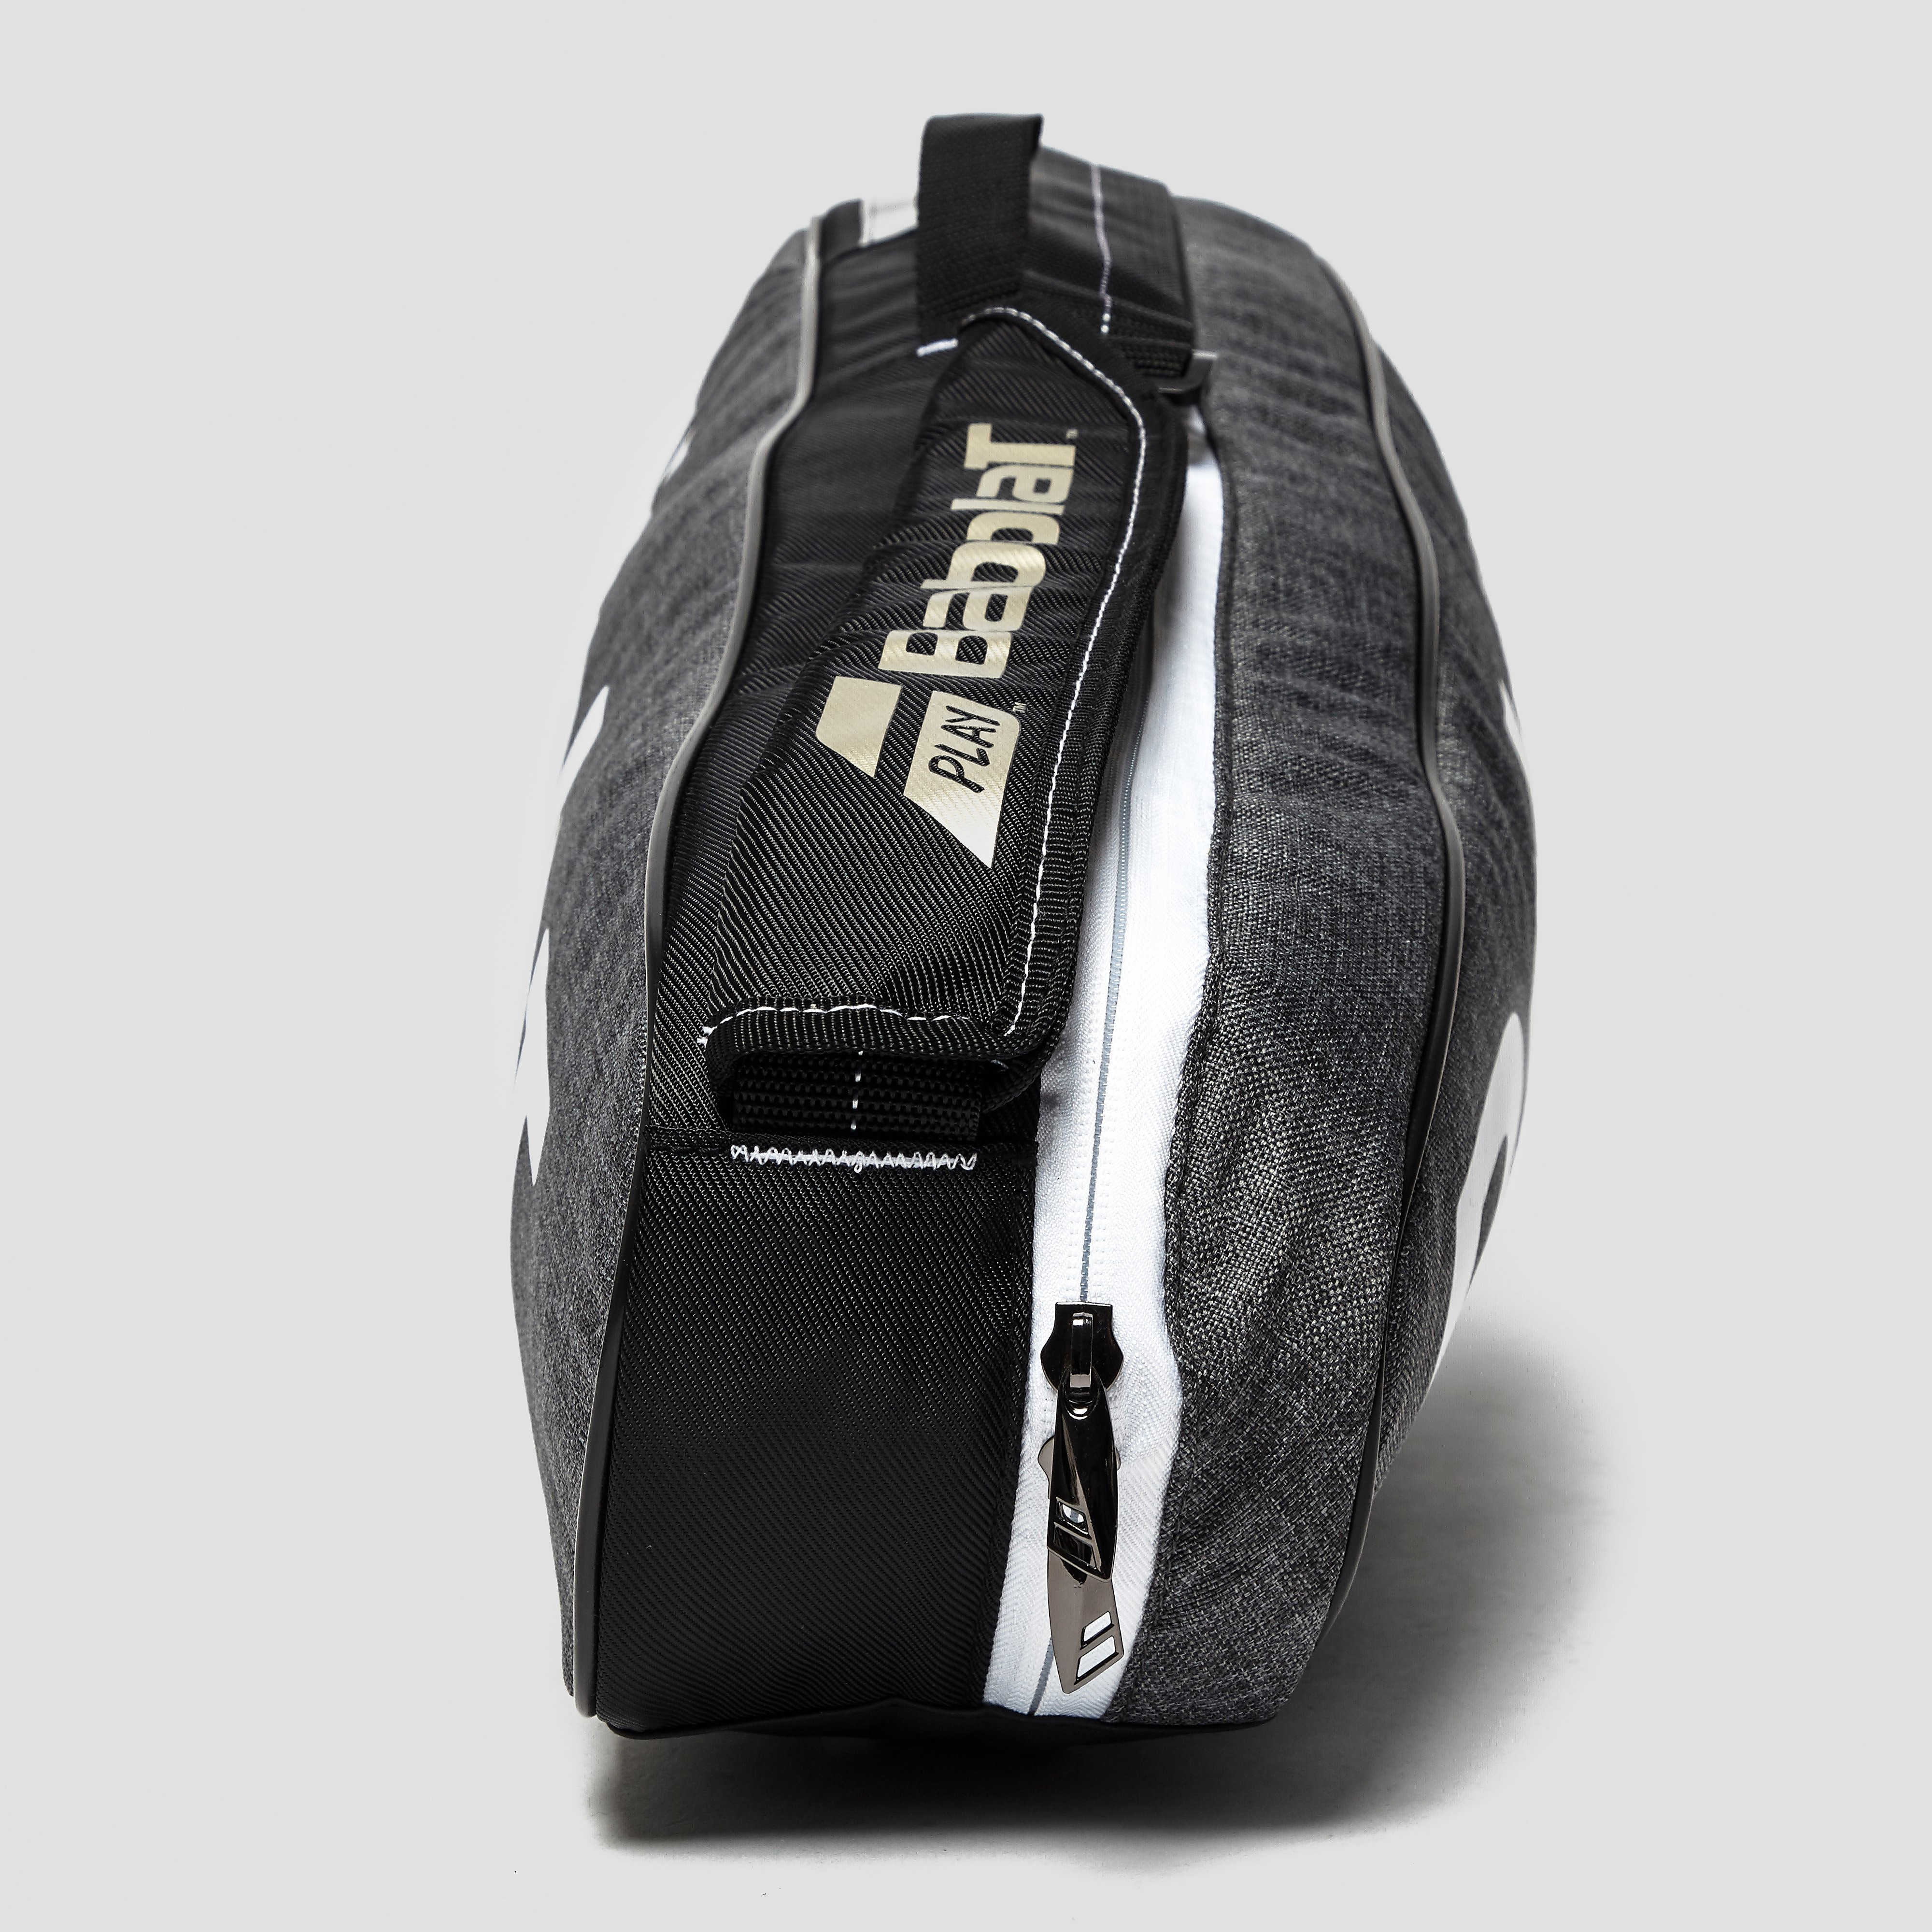 Babolat Babolat Pure 3 Racket Bag